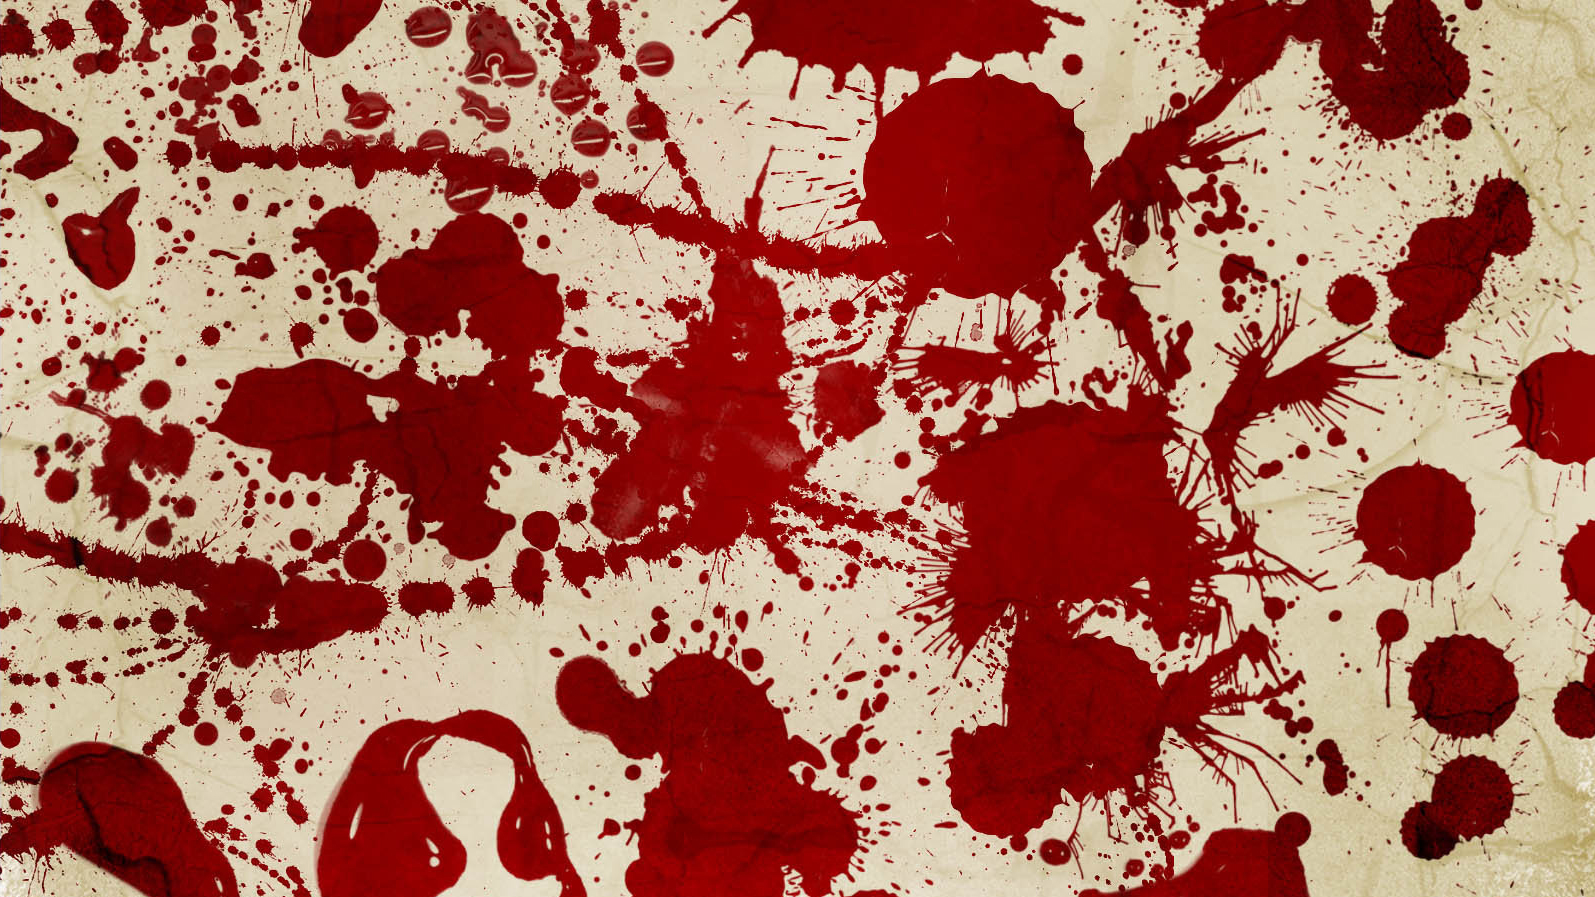 Photoshop brush: blood spatter